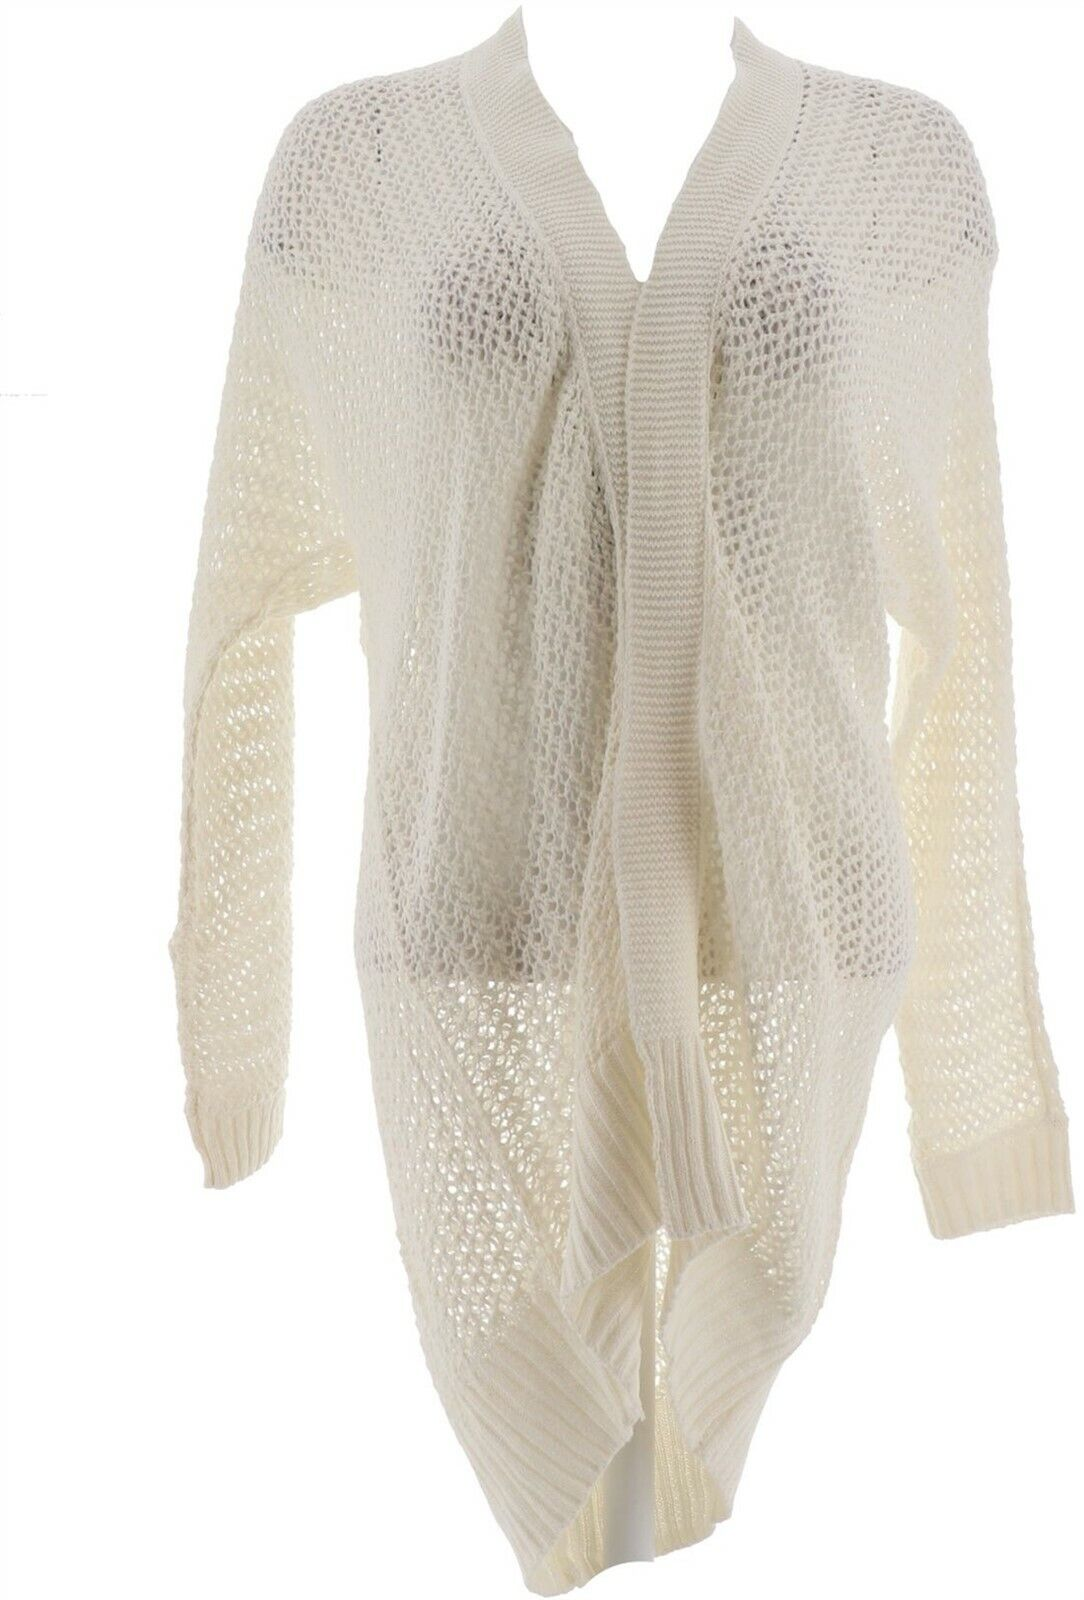 Laurie Felt Cashmere Blend Sweater with Jeweled Neck Color Winter White LARGE